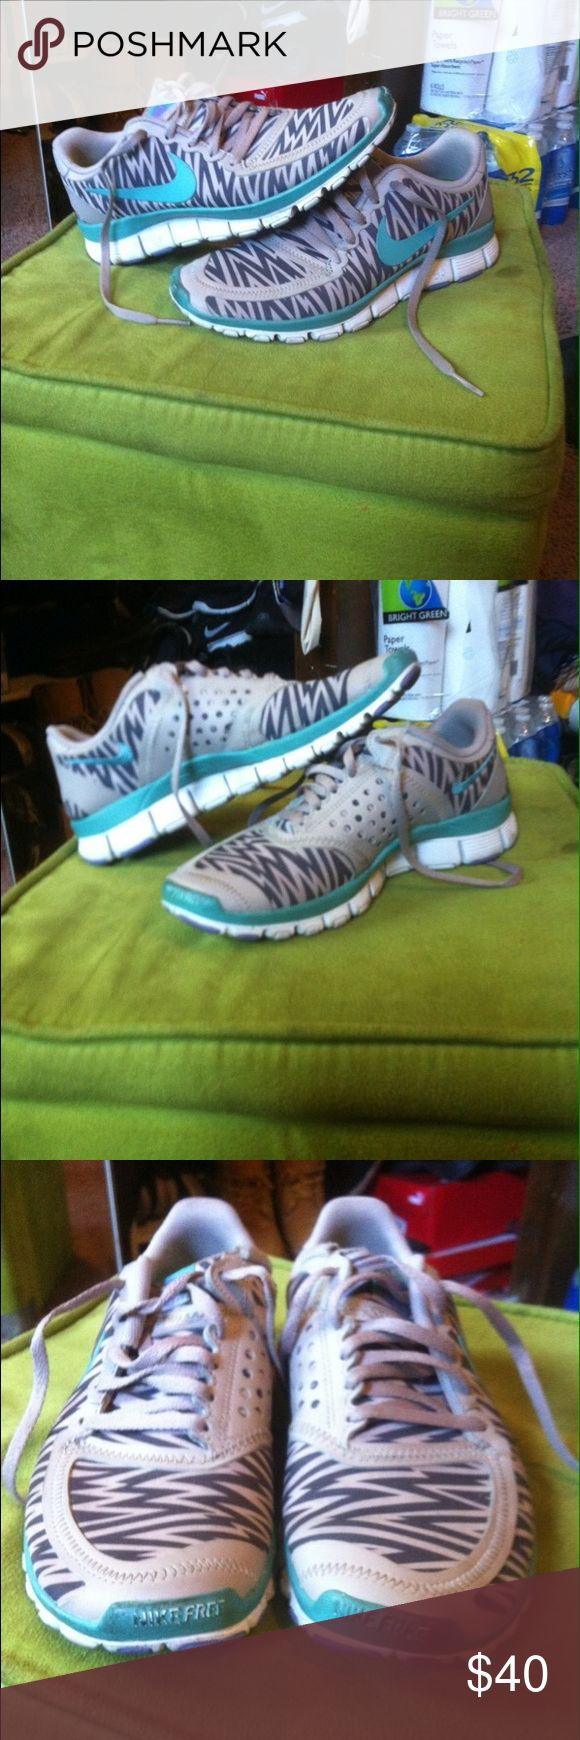 NIKE FREE 5.0 Nike running shoes / Women's Size 6 / gray & black striped w blue swoosh. Good Used condition, still look good & wearable !! Nike Shoes Athletic Shoes